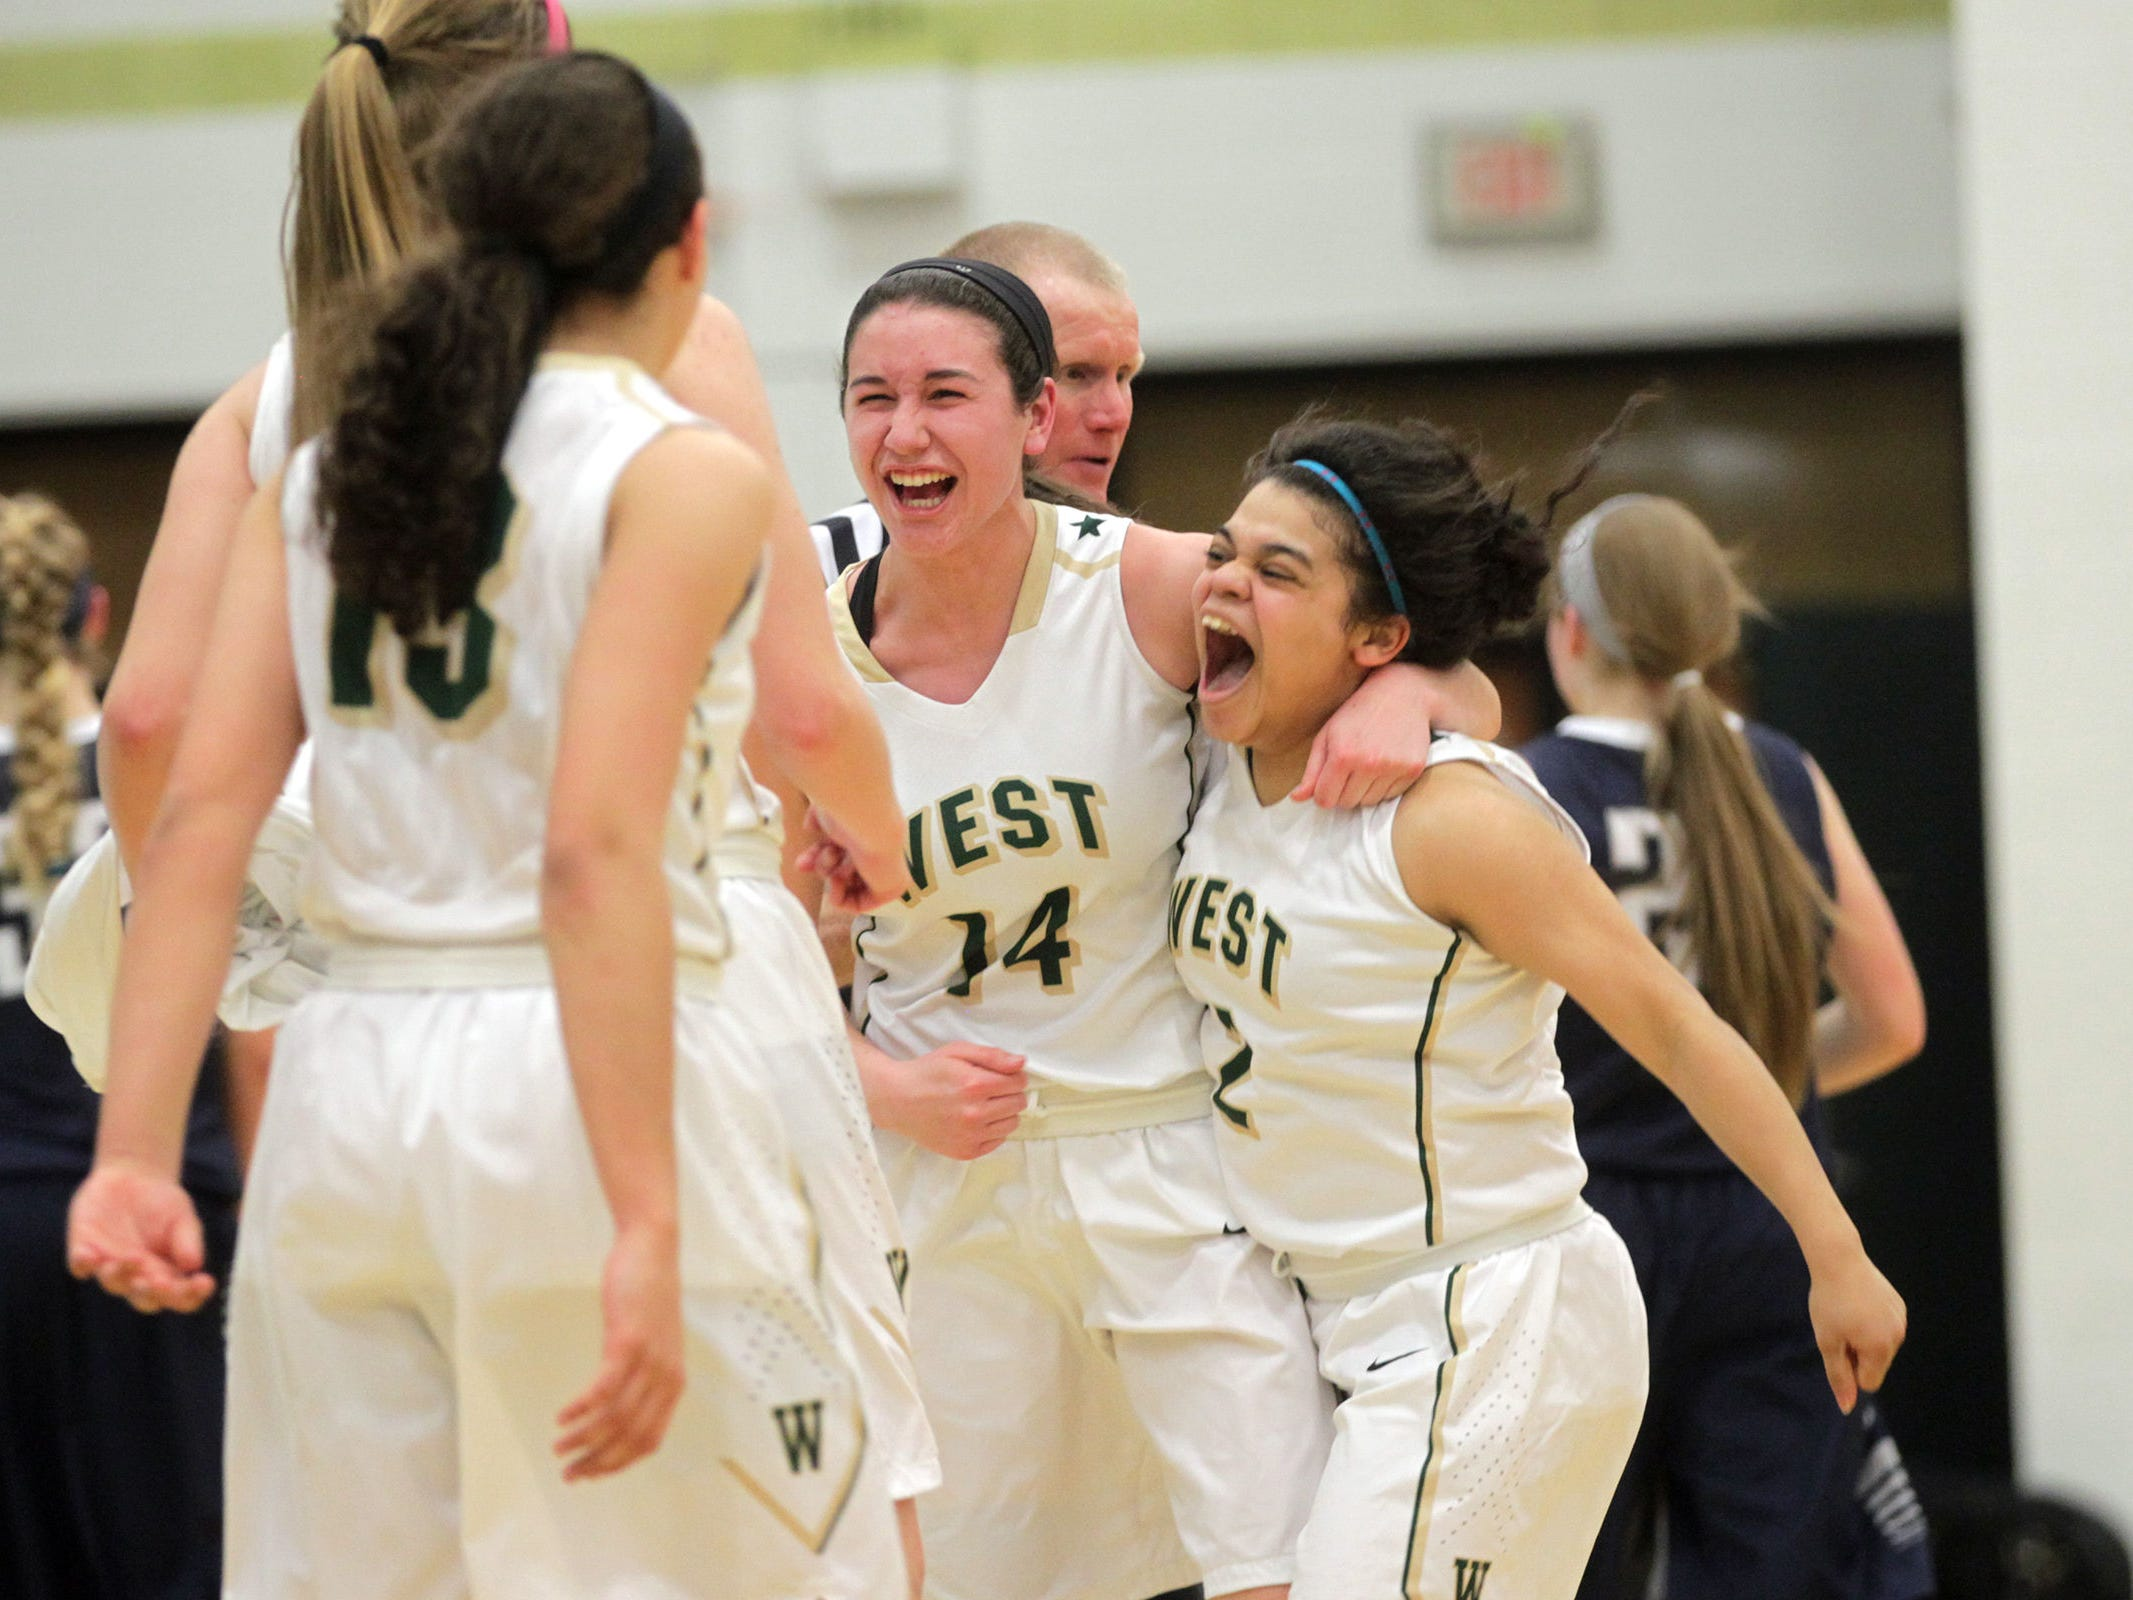 West High senior Dani Craig, center, celebrates with classmate Bella Lozano-Dobbs following the Women of Troy's Class 5A regional final against Pleasant Valley on Tuesday, Feb. 24, 2015. West High won, 45-27, to advance to the state tournament. David Scrivner / Iowa City Press-Citizen